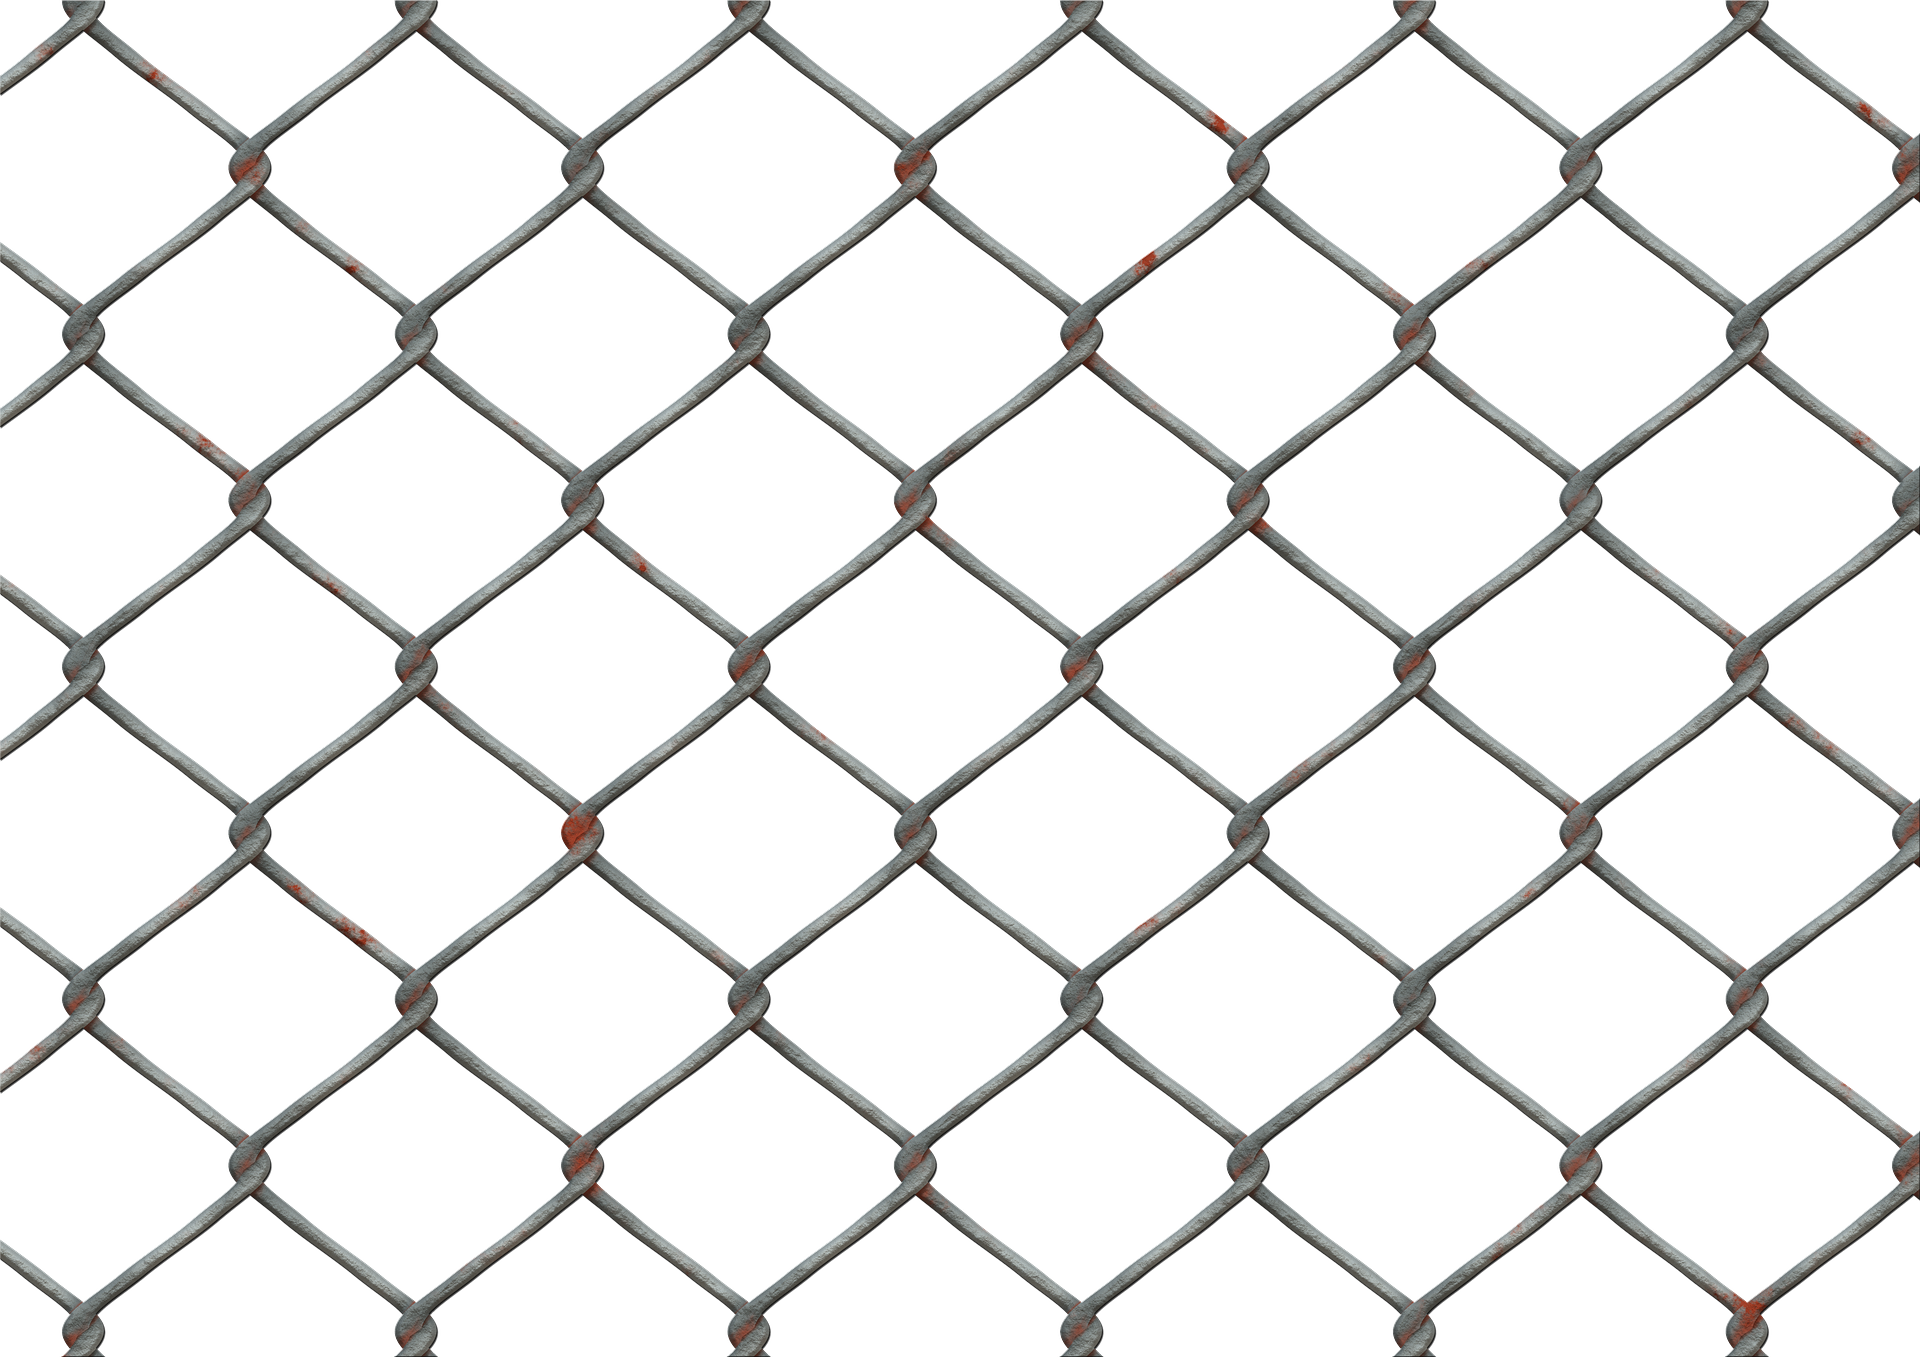 Chain fence png. Mesh wire link fencing